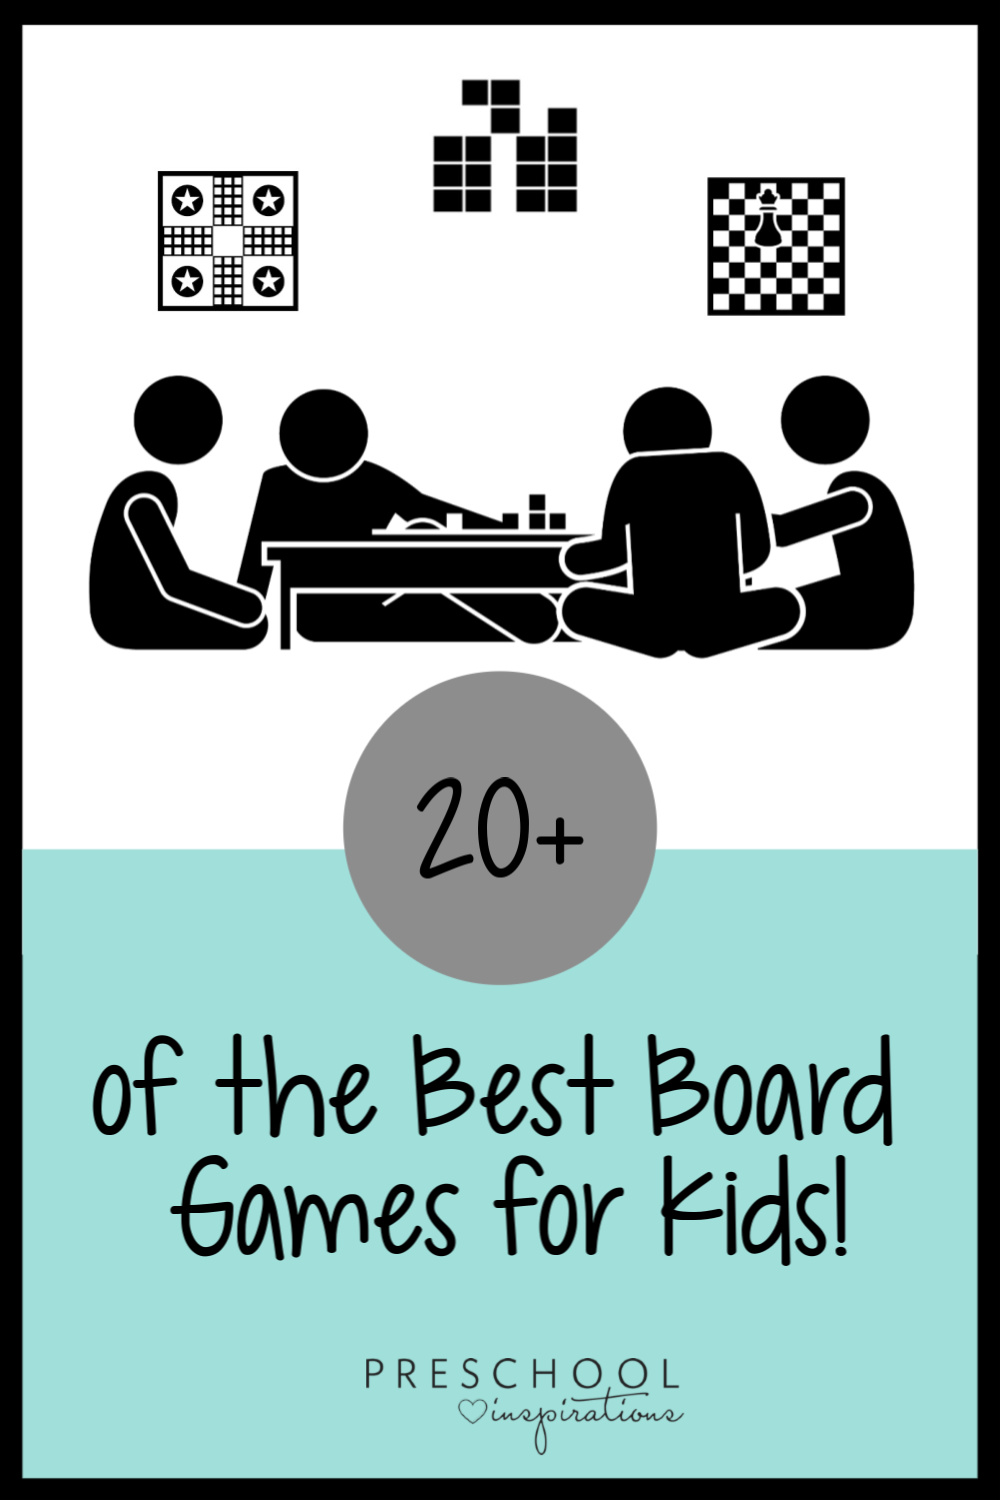 We love these board games for kids! Find new ideas for family game night or discover an old childhood favorite.